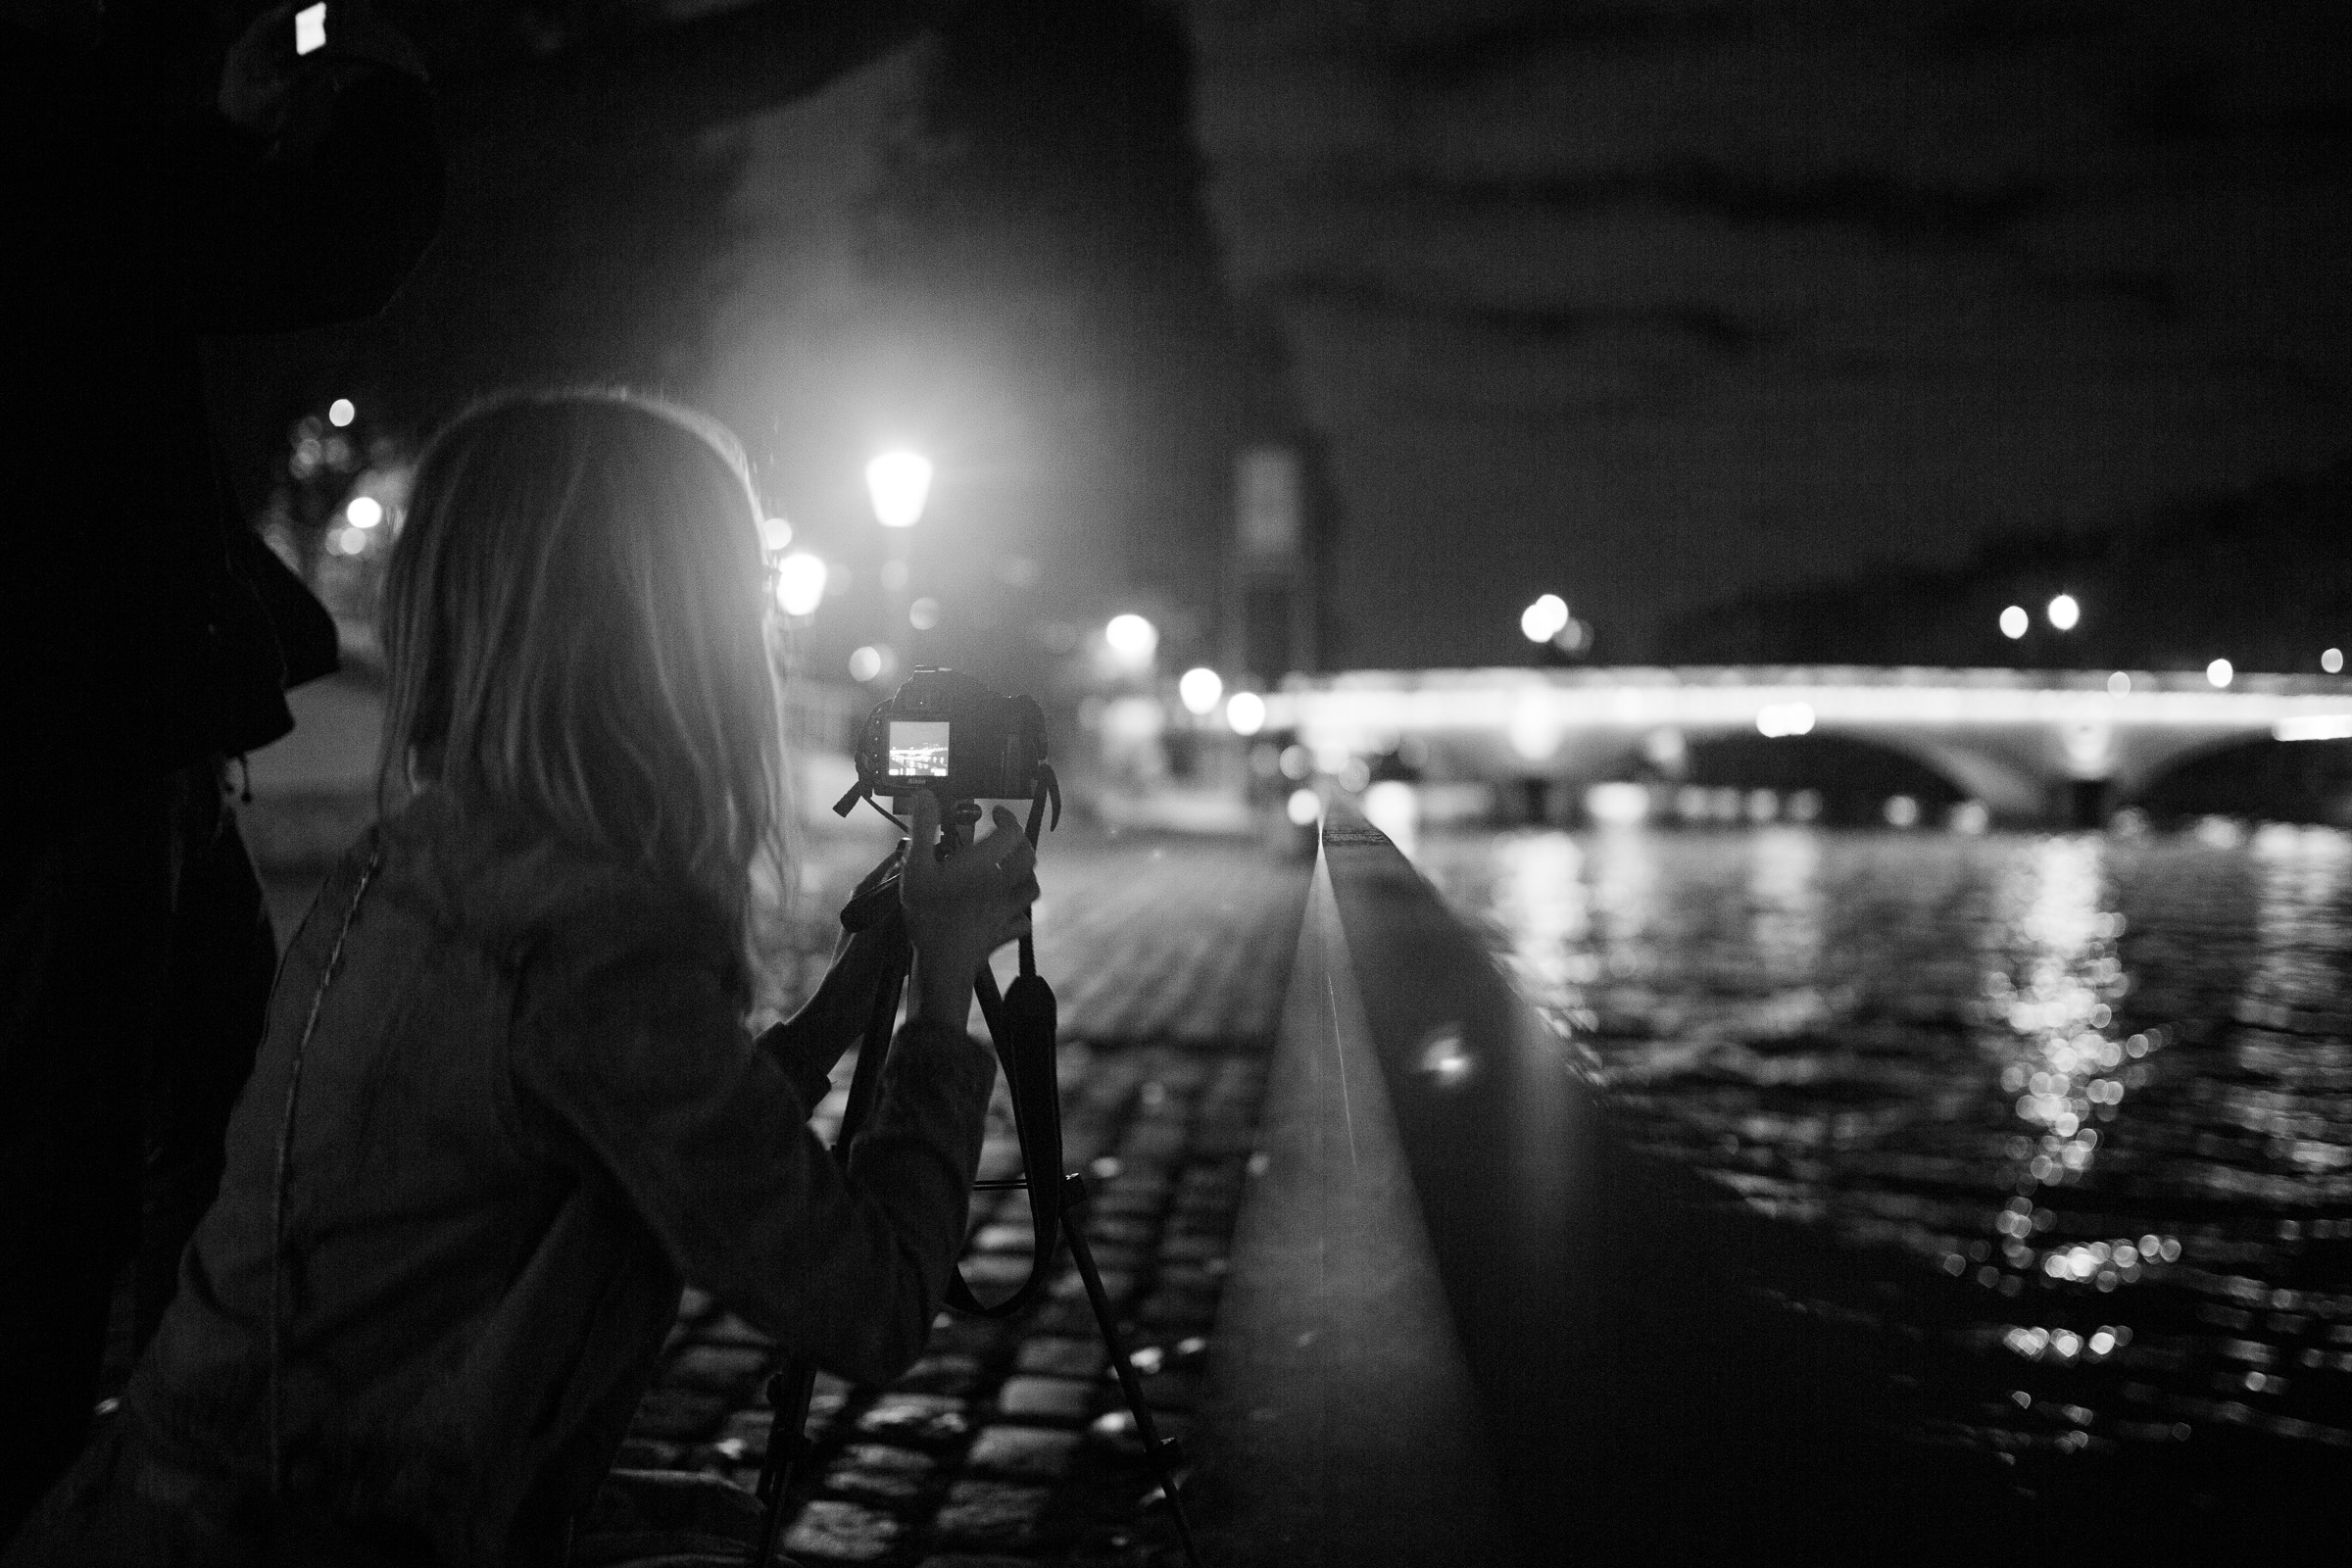 PARIS PHOTO WALK BY NIGHT - 24 OCT